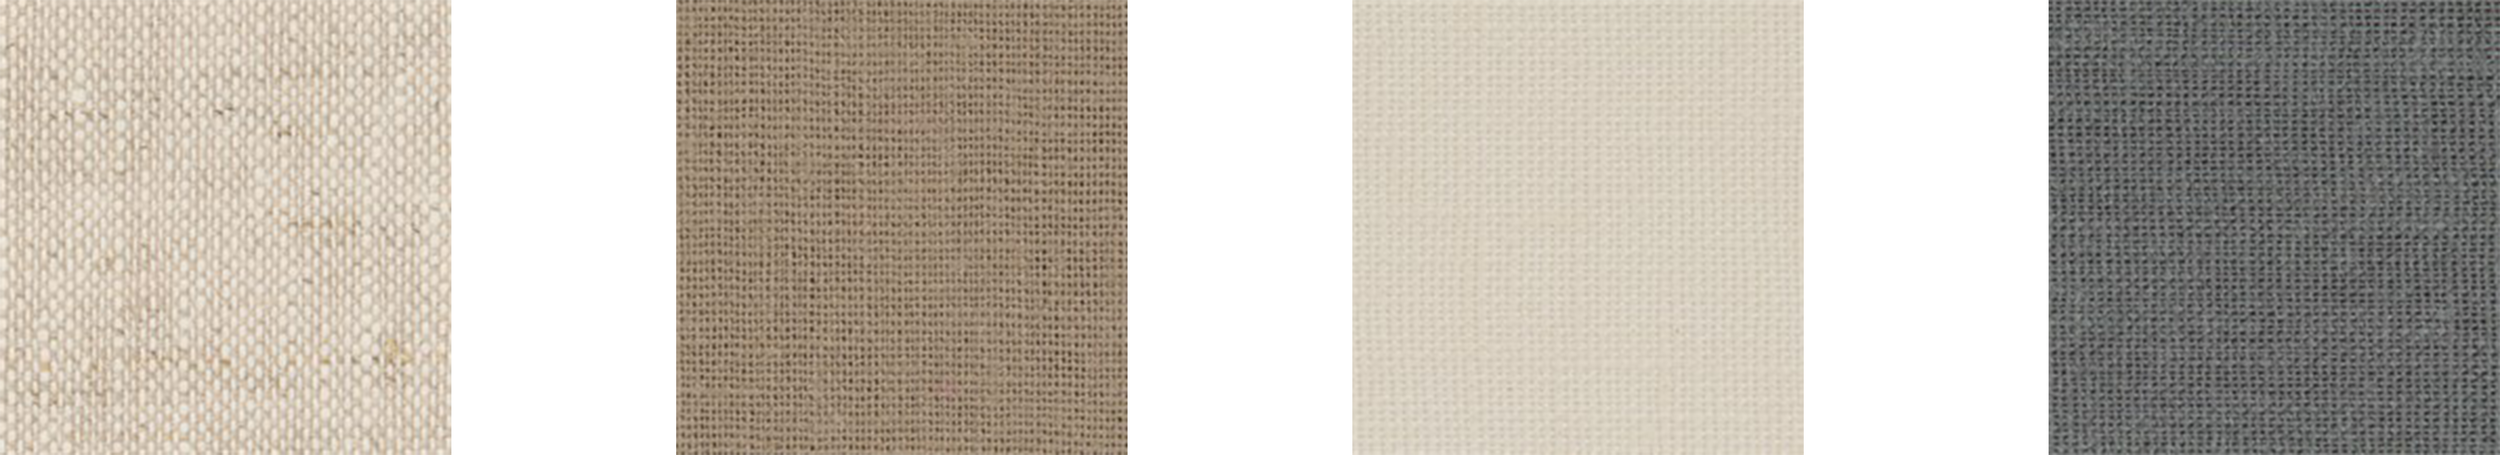 Linen Cover Colors.png